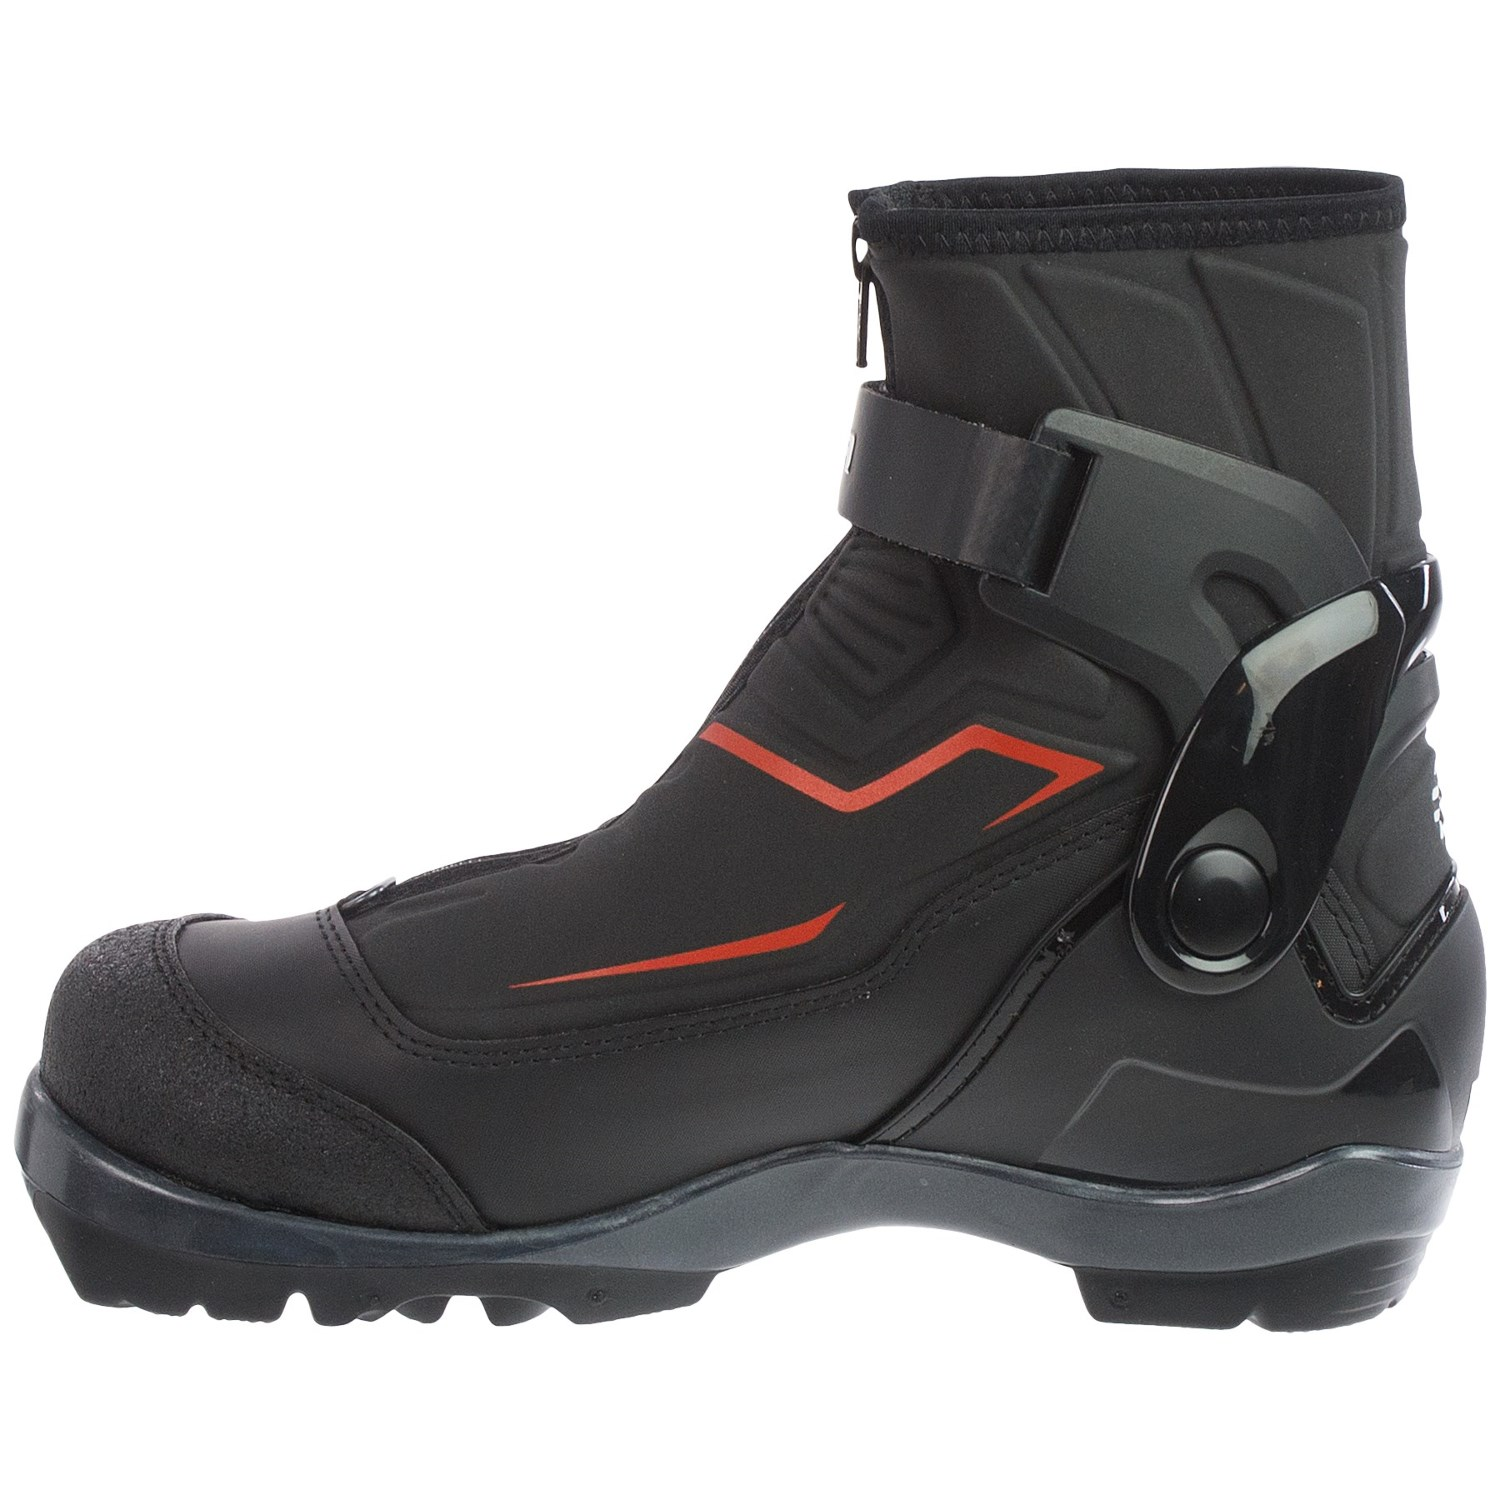 Alpina Nordic Boots Alpina Bc Nnn Backcountry Ski Boots For Men - Alpina 1550